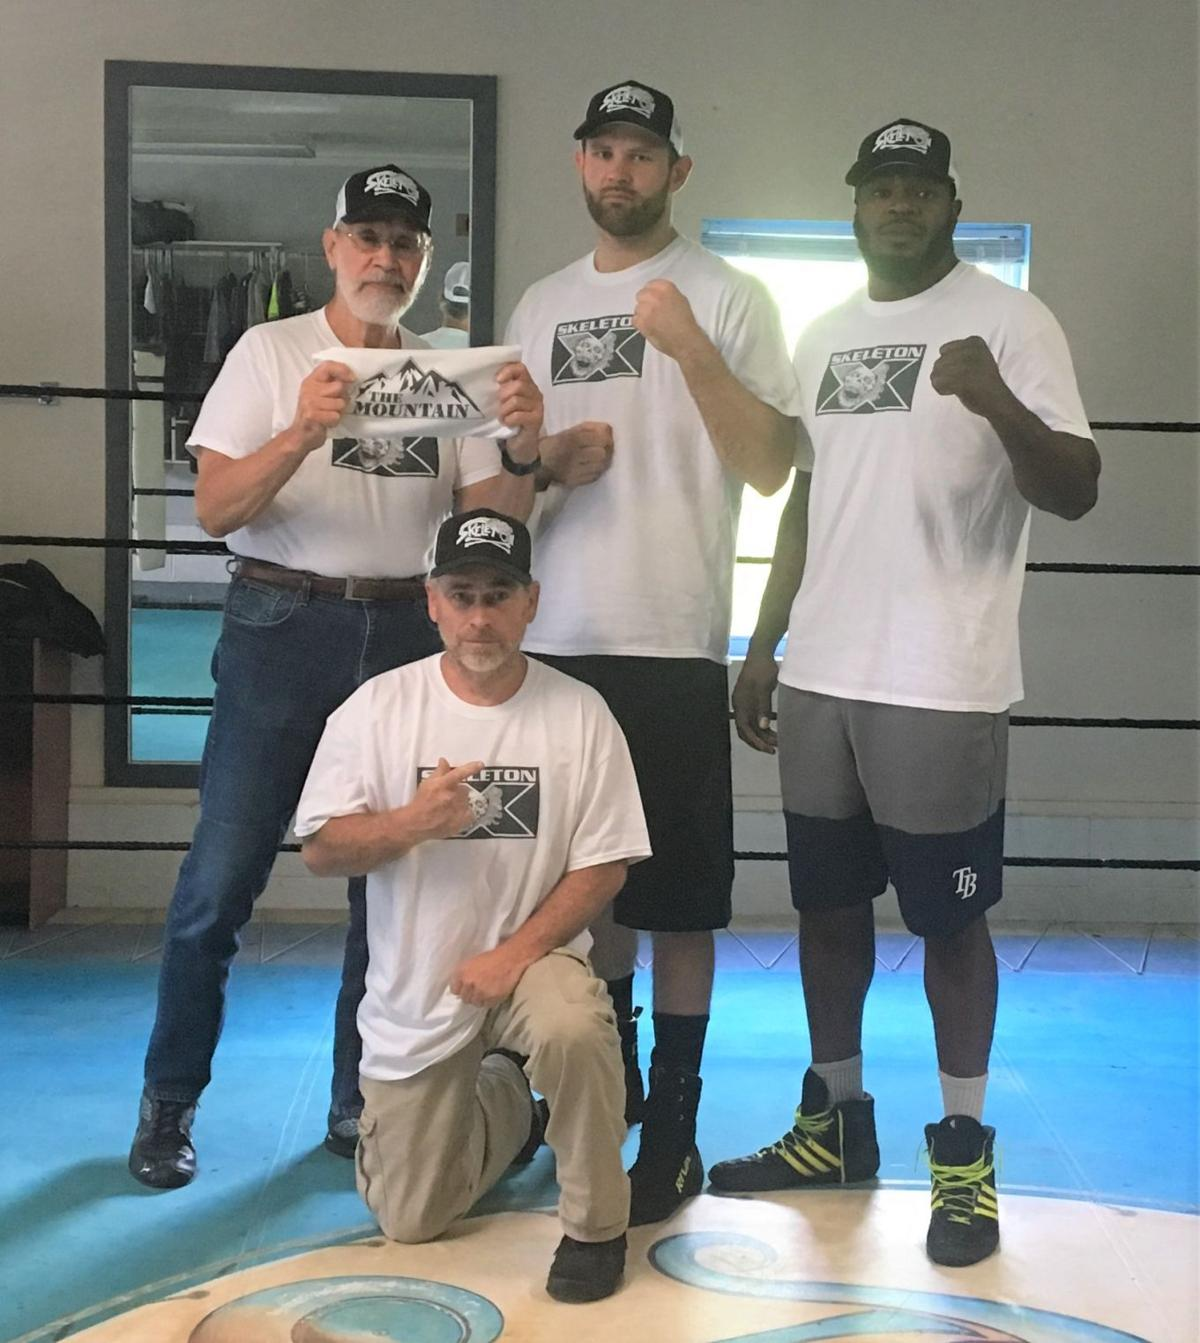 Garnic, Martz team up again for boxing match on national TV